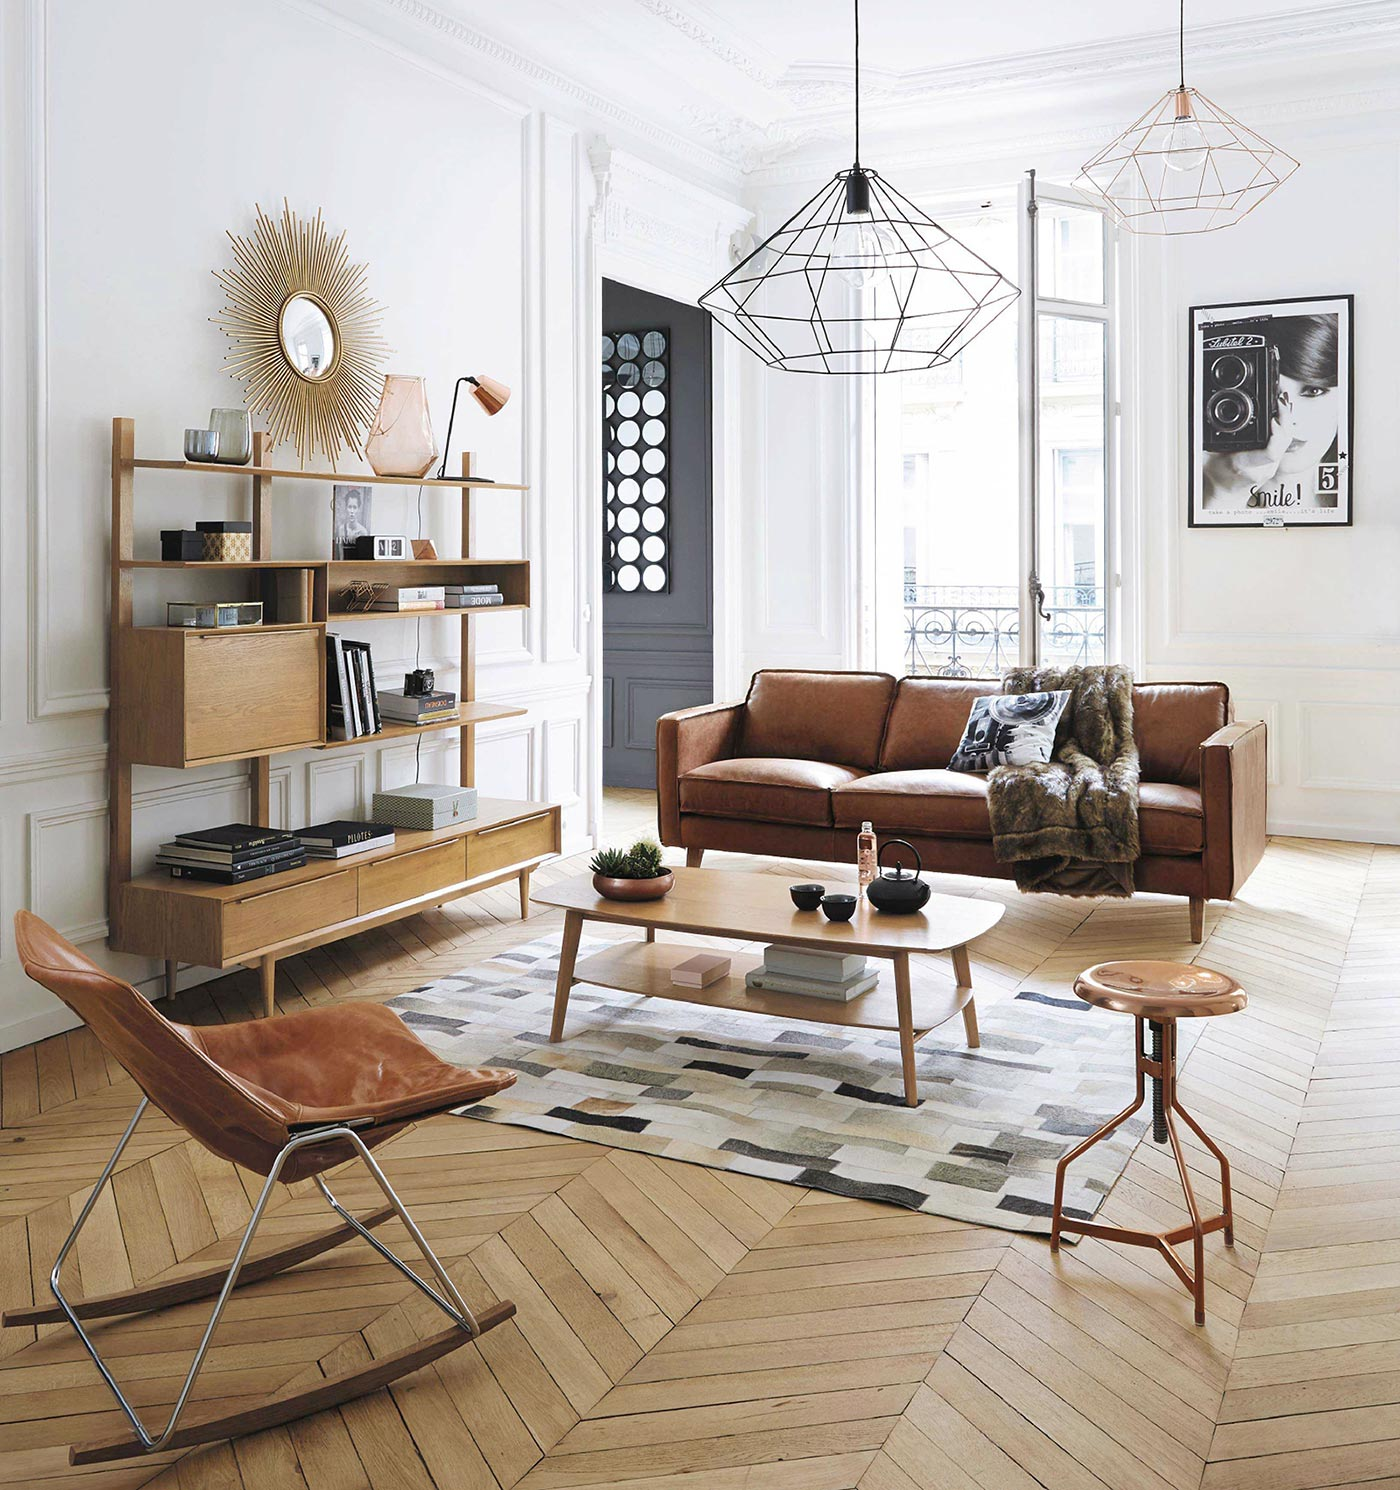 Mid Century Modern Living Room Design, Image By Maisons Du Monde